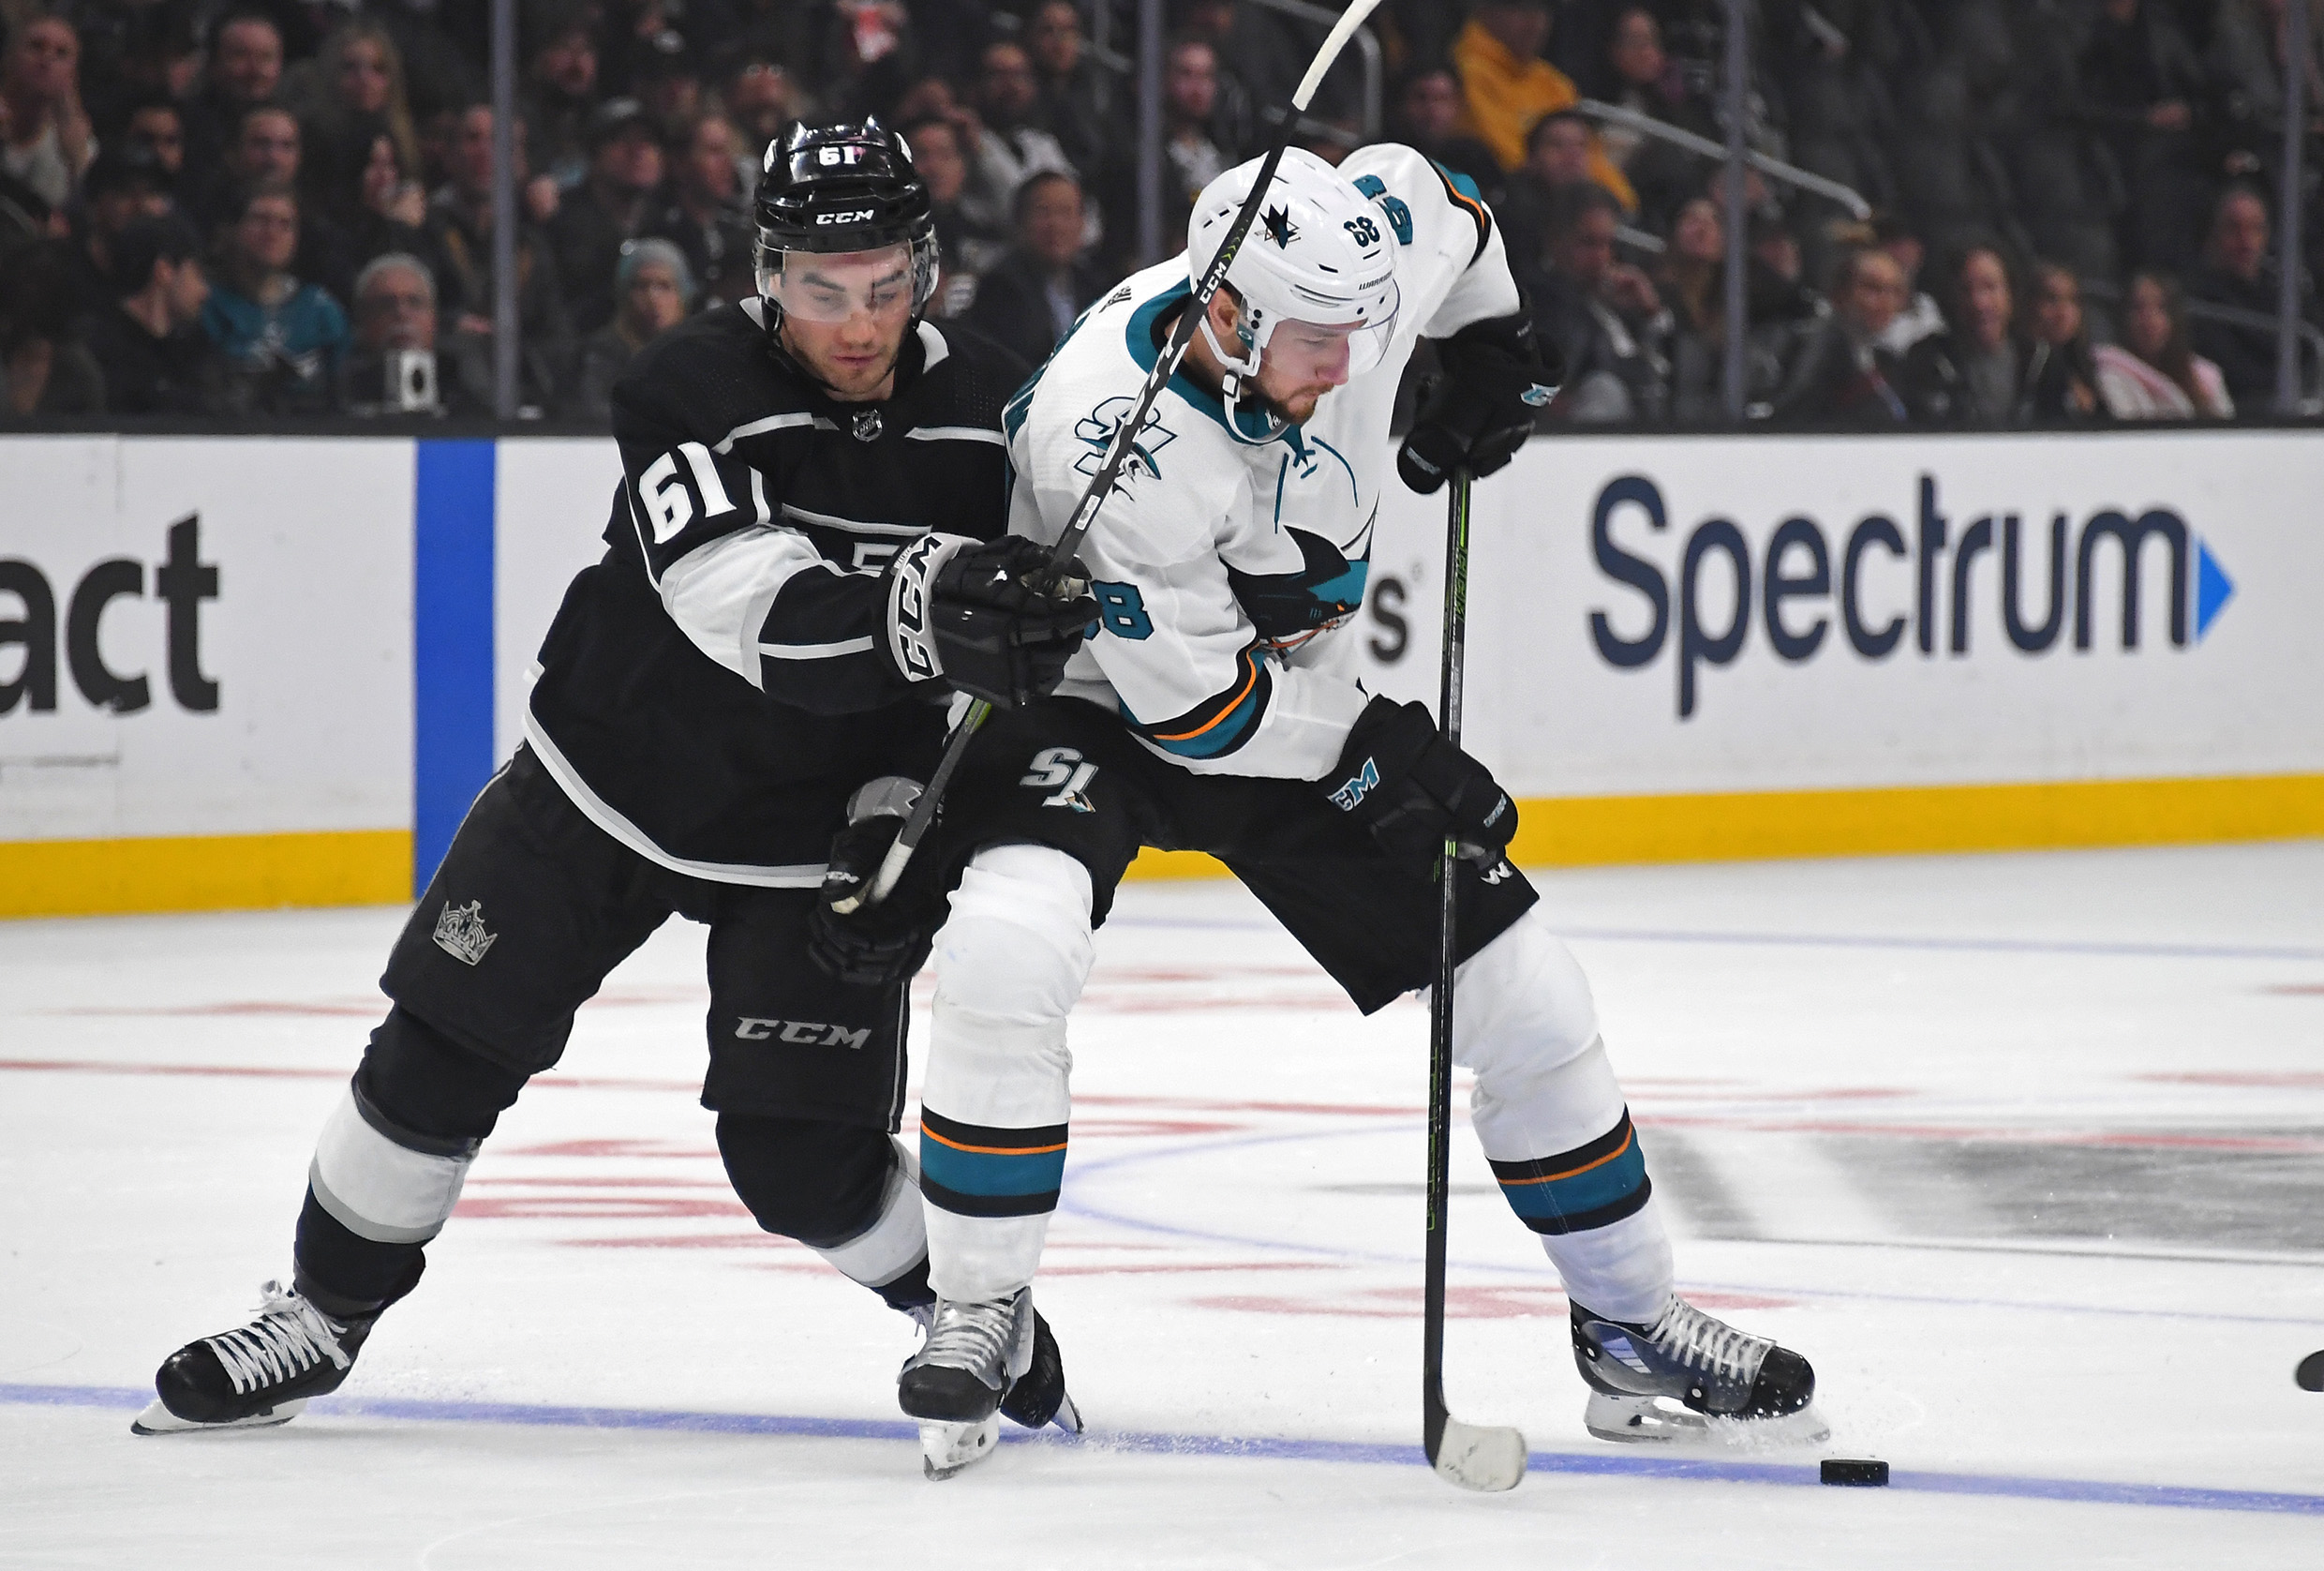 Mar 21, 2019; Los Angeles, CA, USA; Los Angeles Kings defenseman Sean Walker (61) and San Jose Sharks center Melker Karlsson (68) battle for the puck in the third period of the game at Staples Center.